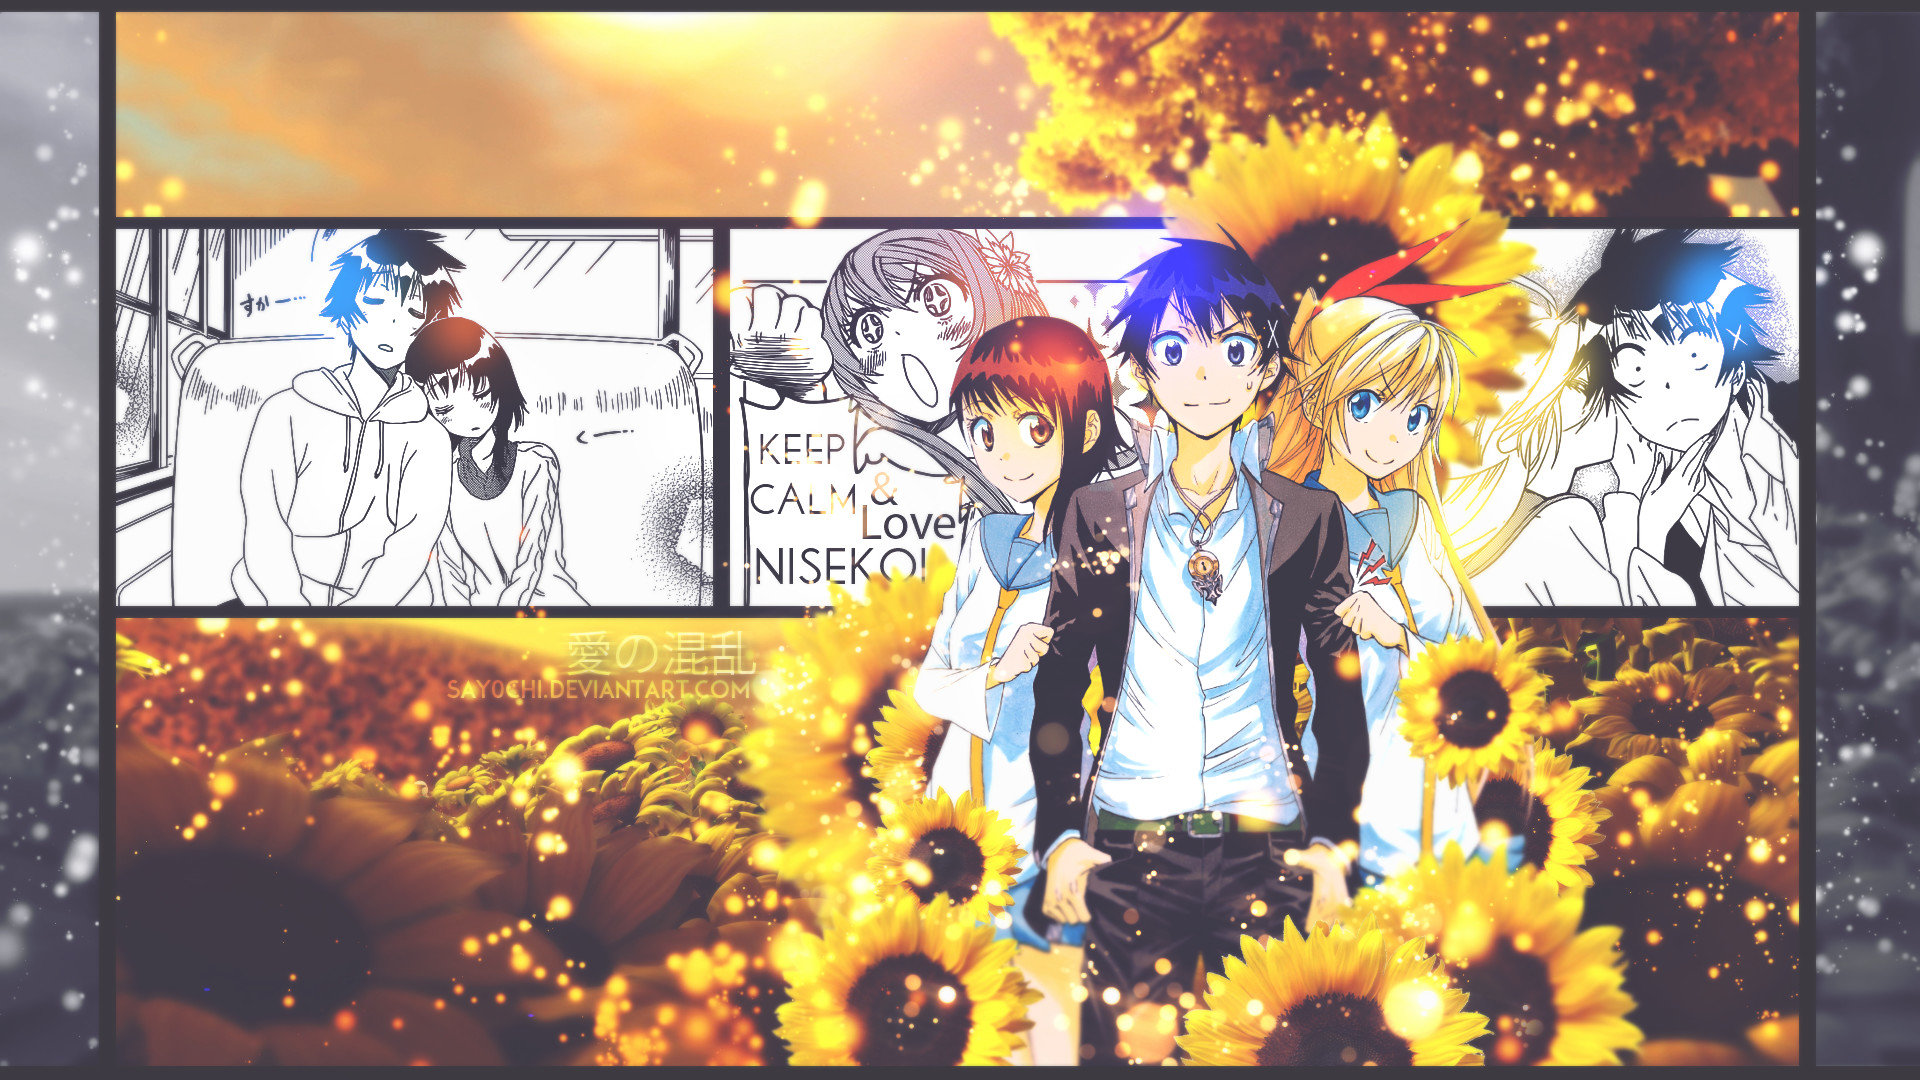 Download full hd 1080p Nisekoi PC background ID:323347 for free